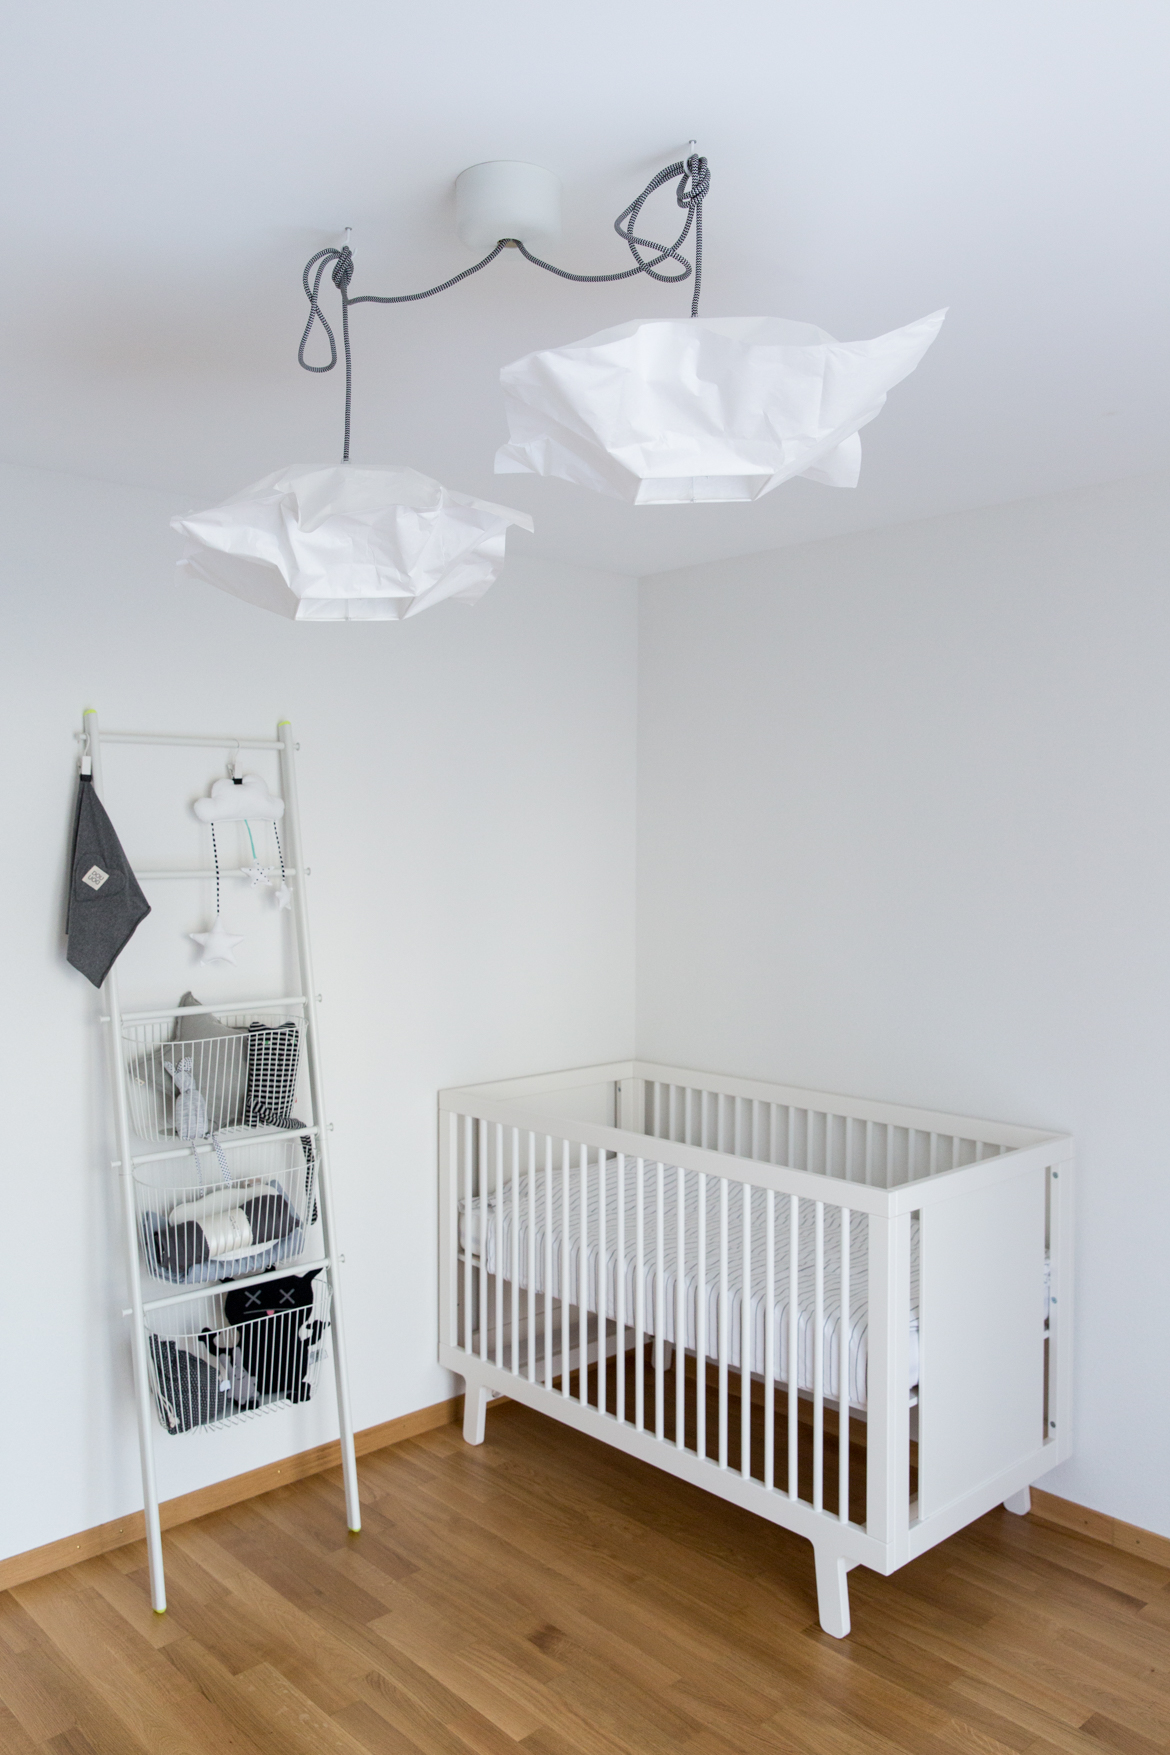 our little one's gender neutral nursery